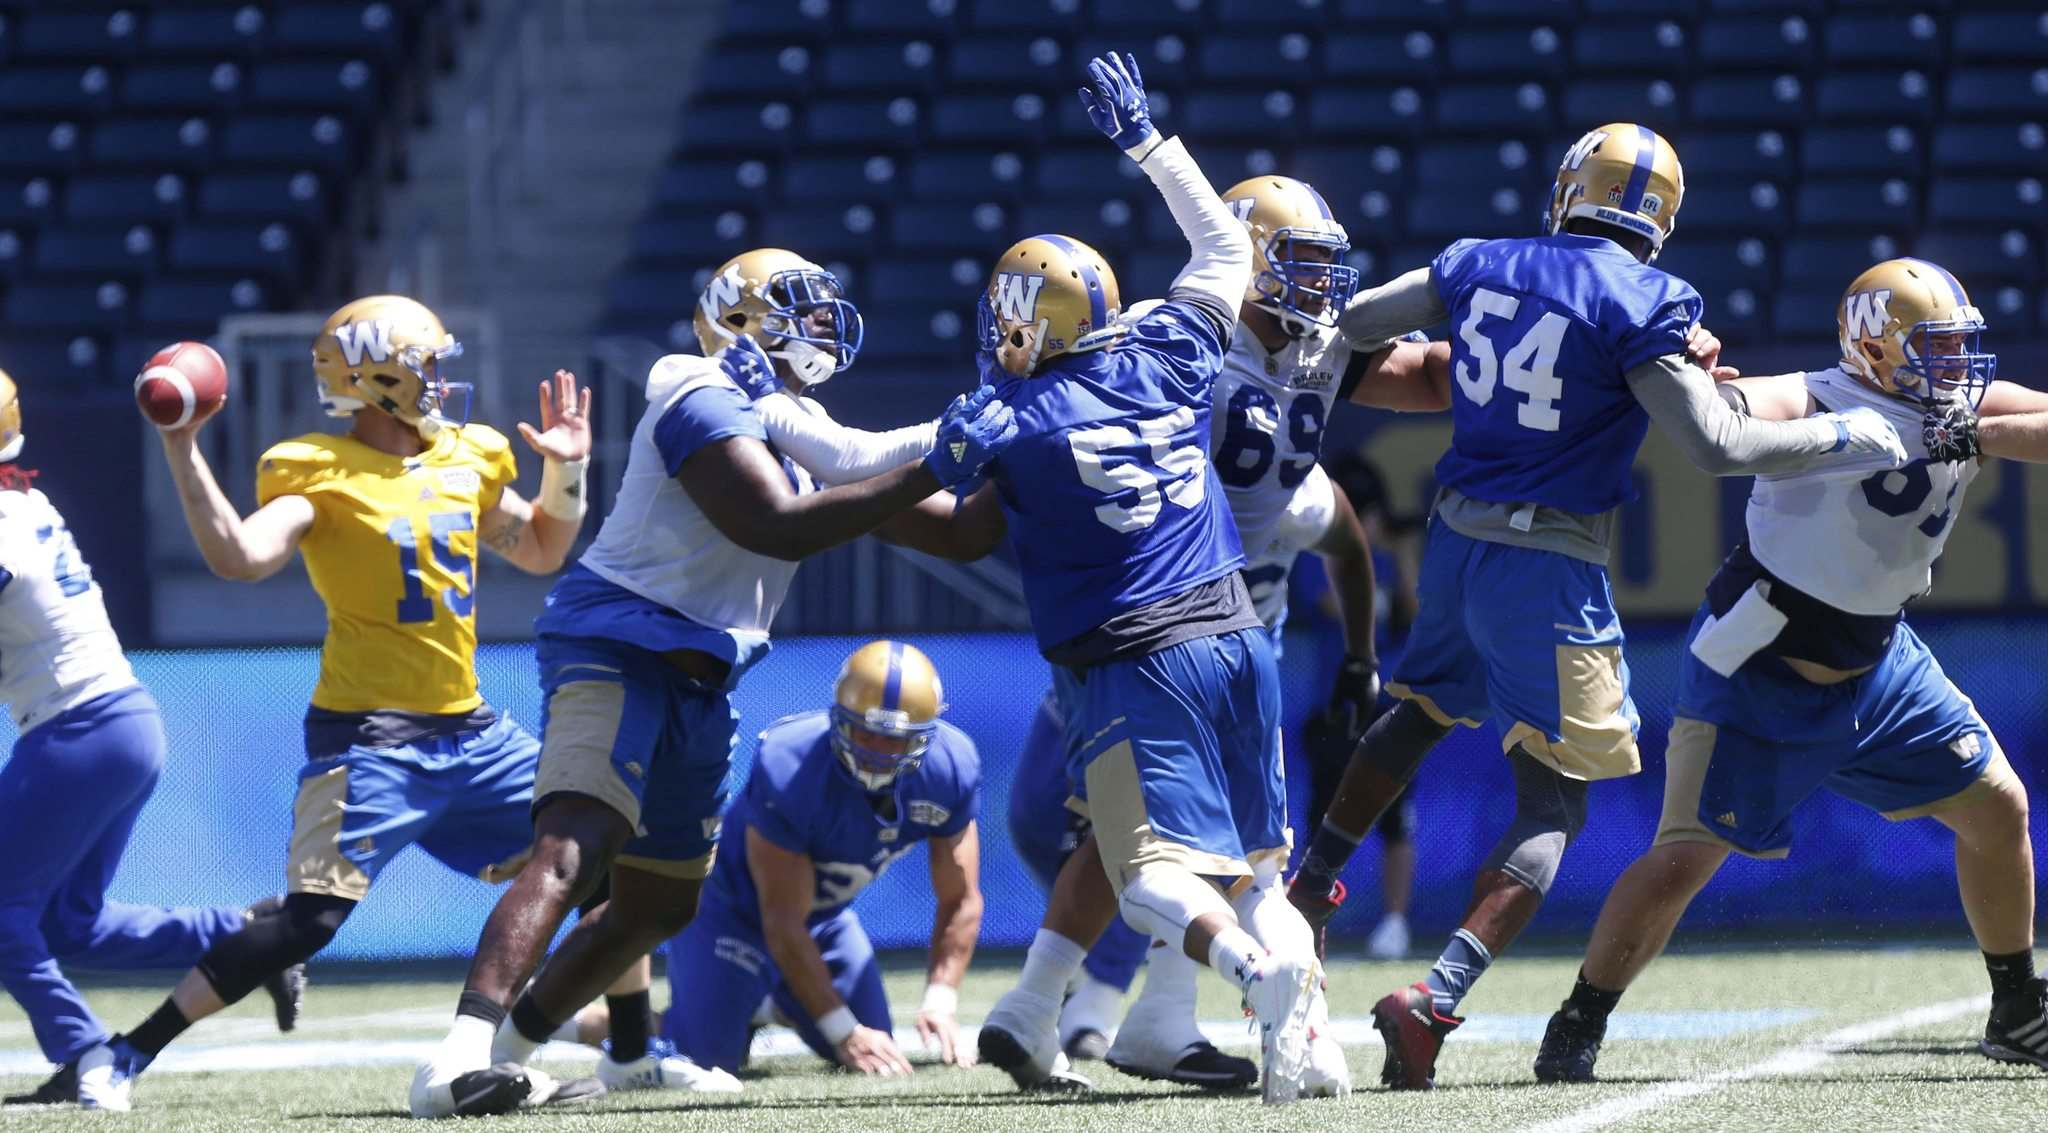 The Bombers' defensive line puts pressure on QB Matt Nichols during practice at Investors Group Field Wednesday in preparation for Friday's home opener against Calgary. (Wayne Glowacki / Winnipeg Free Press)</p>